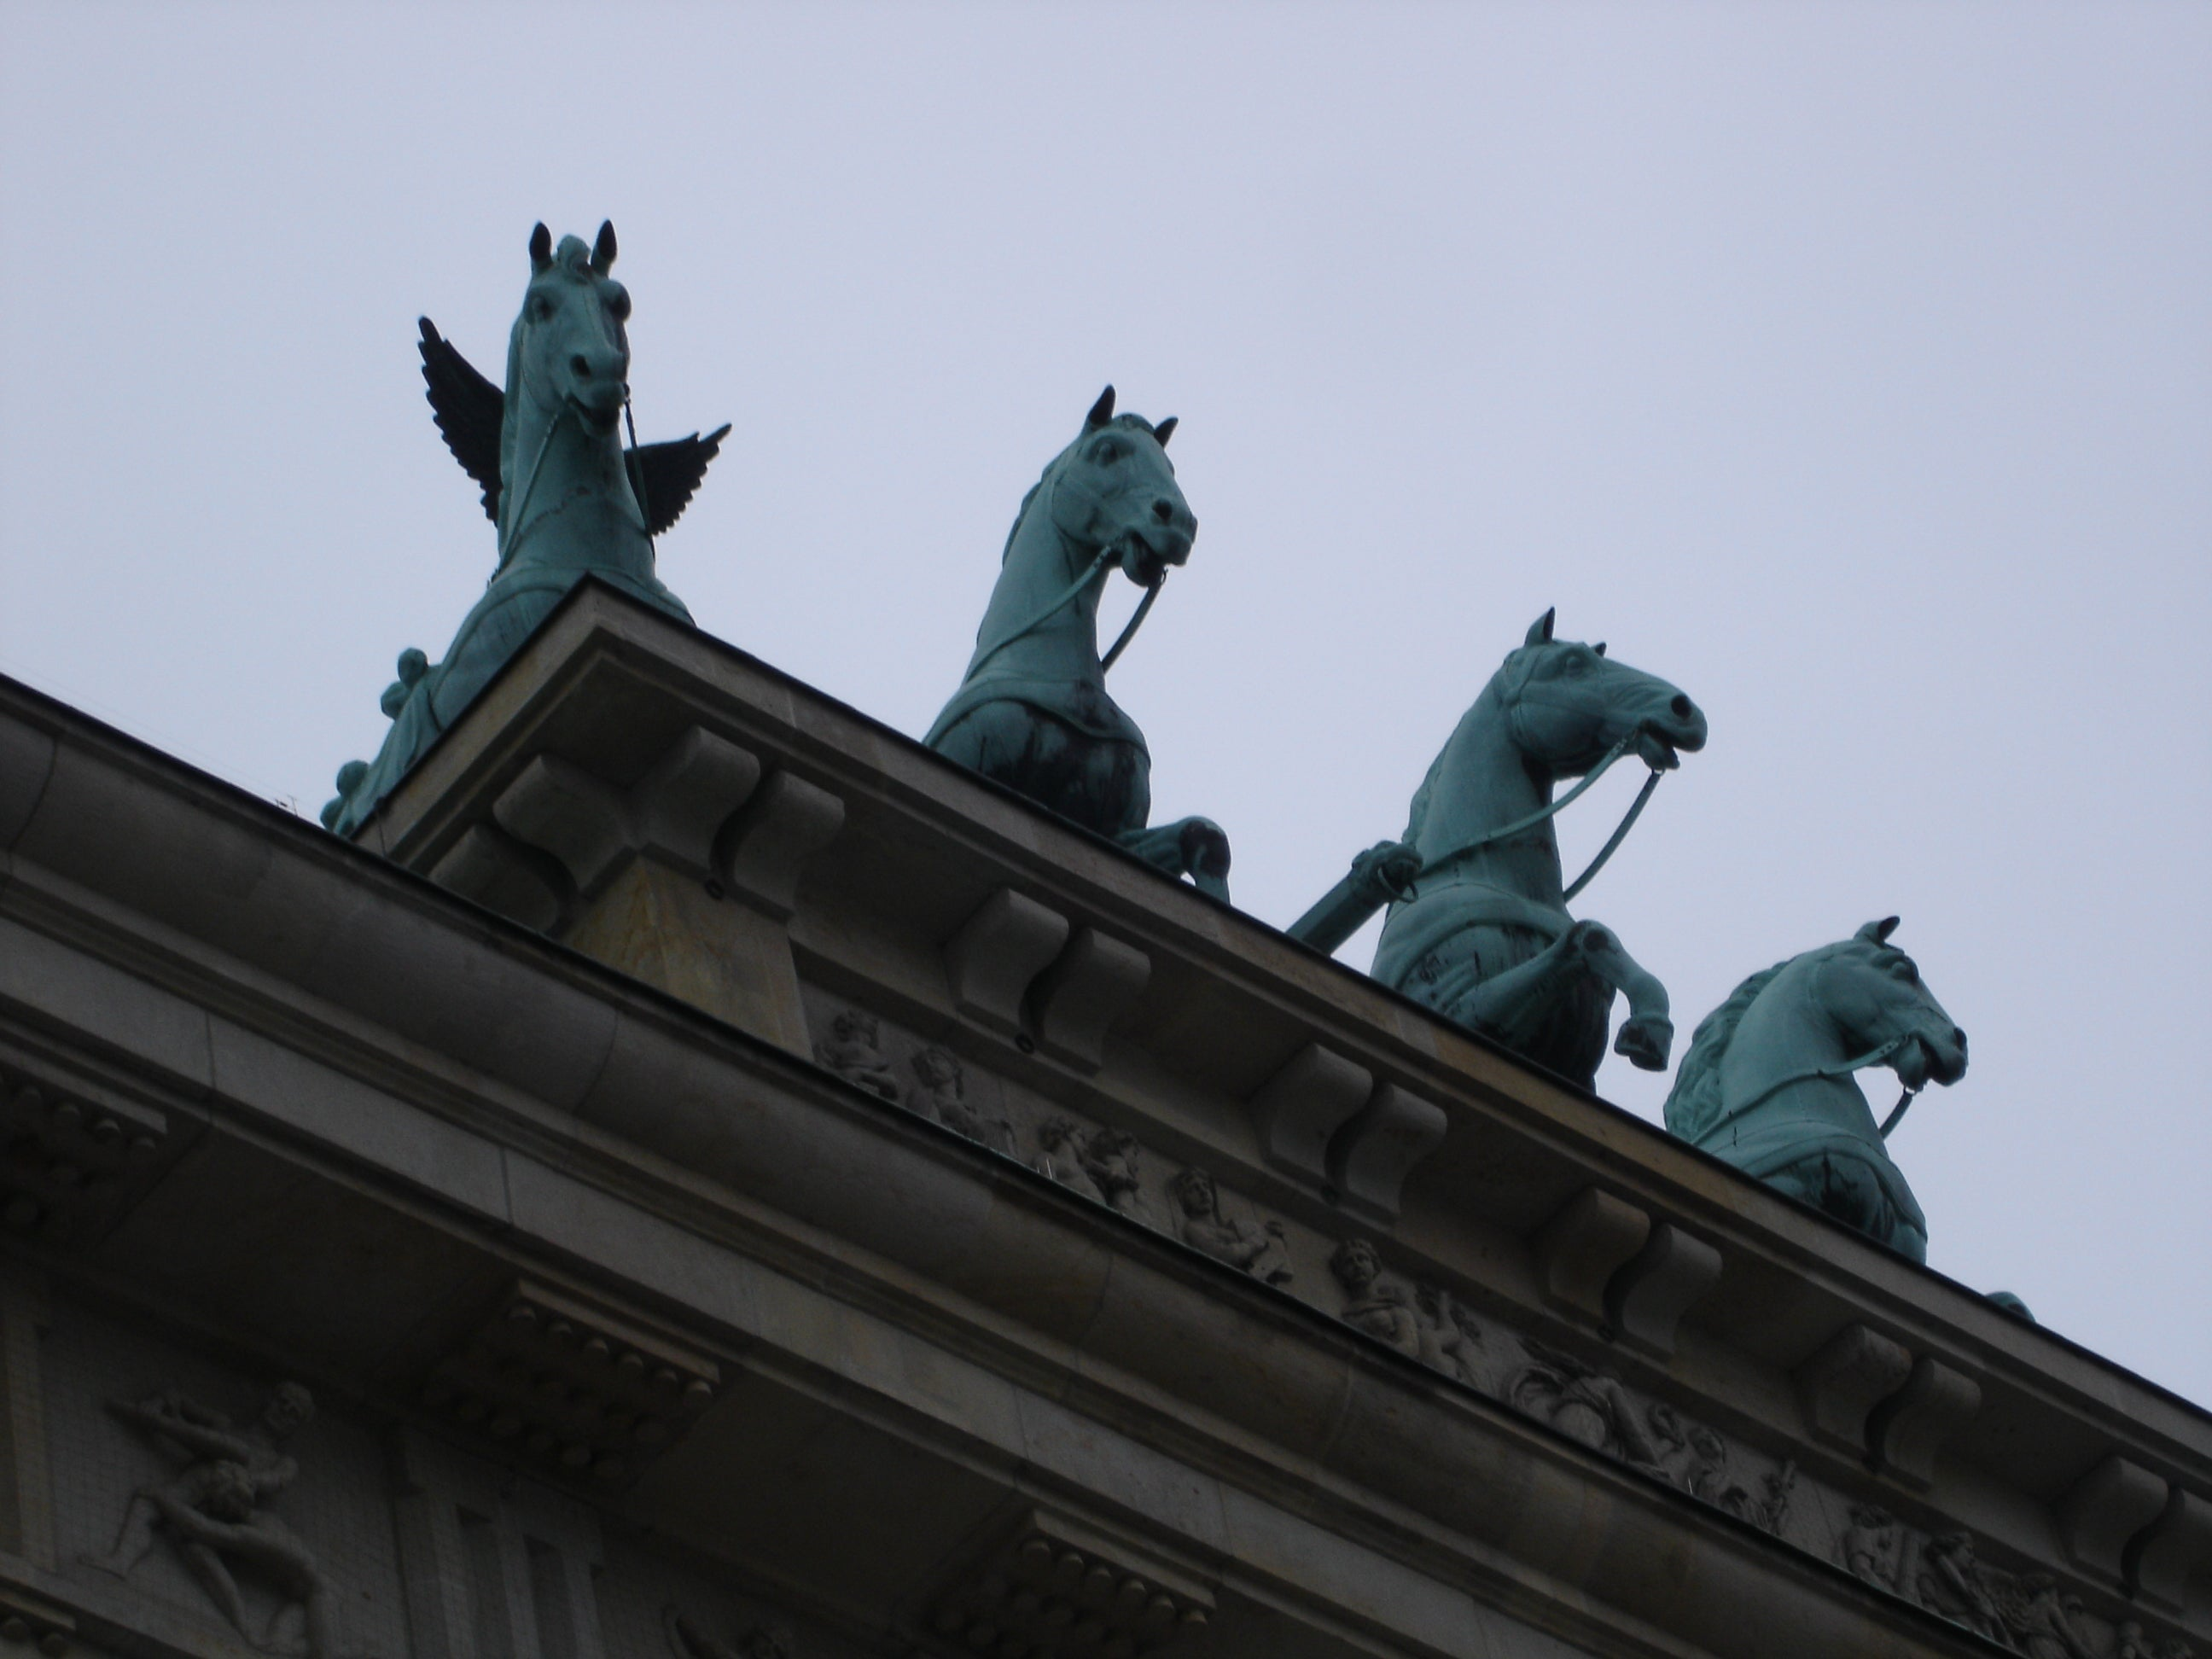 Roof in Brandenburg Gate